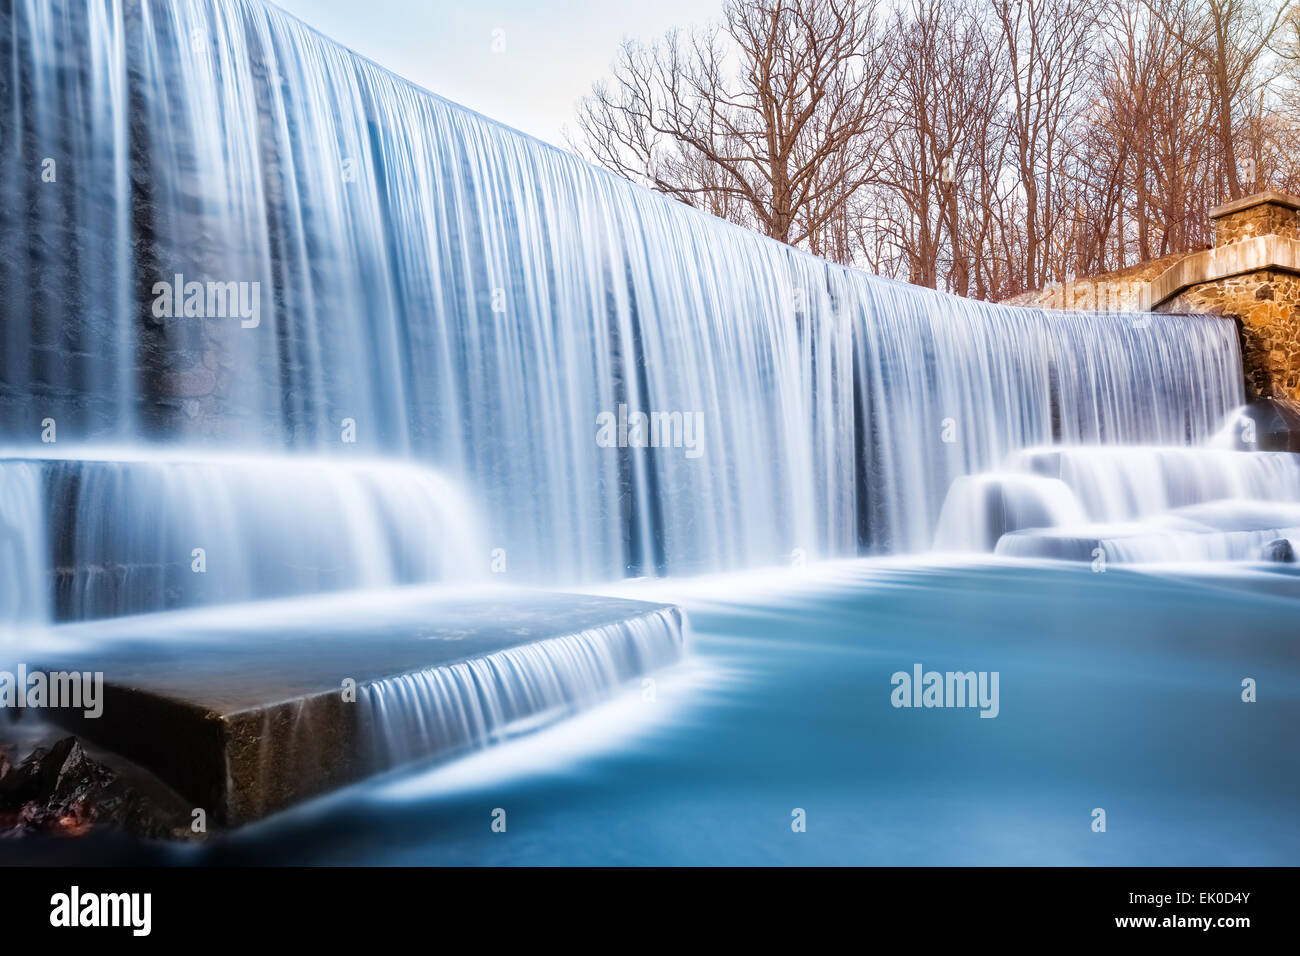 Seeley's Pond waterfall, in New Jersey. - Stock Image